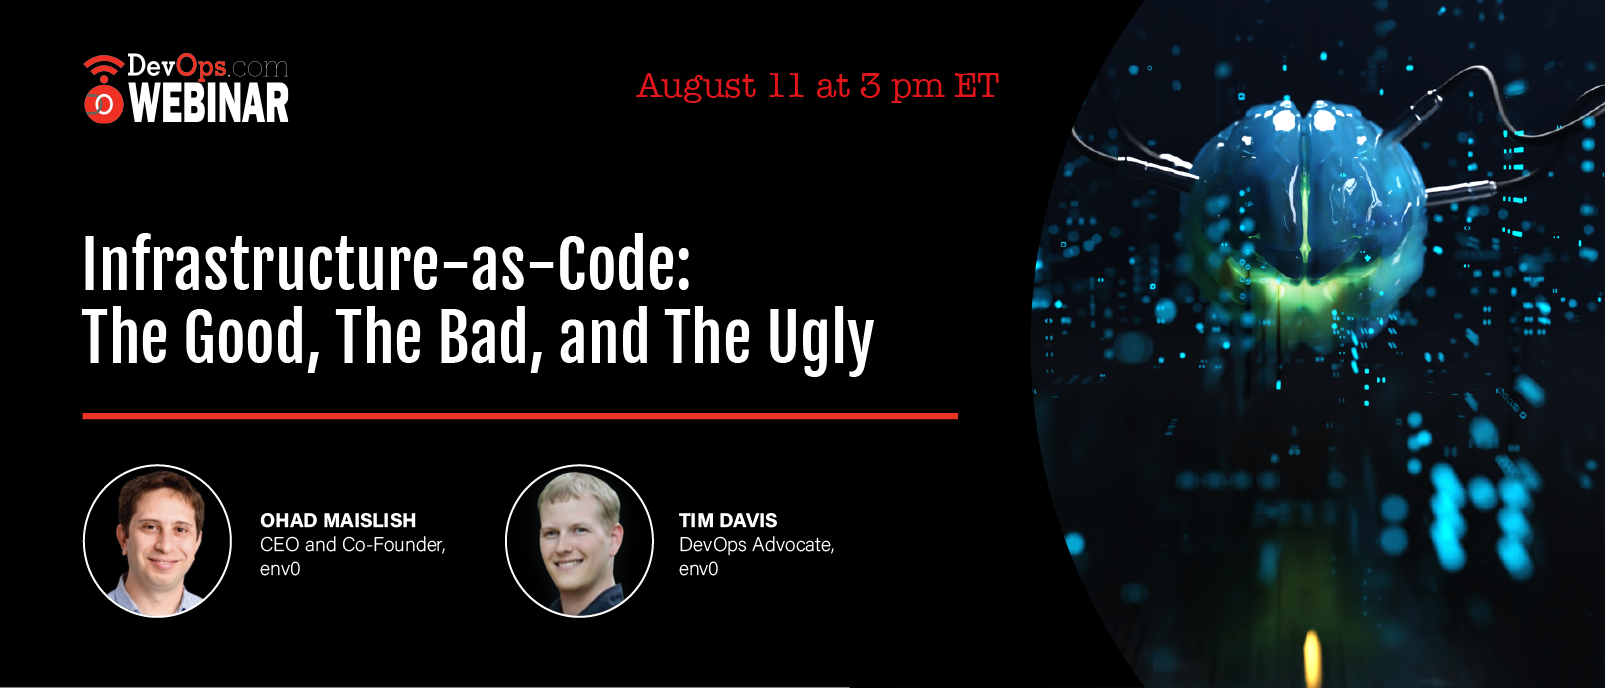 Infrastructure-as-Code: The Good, The Bad, and The Ugly